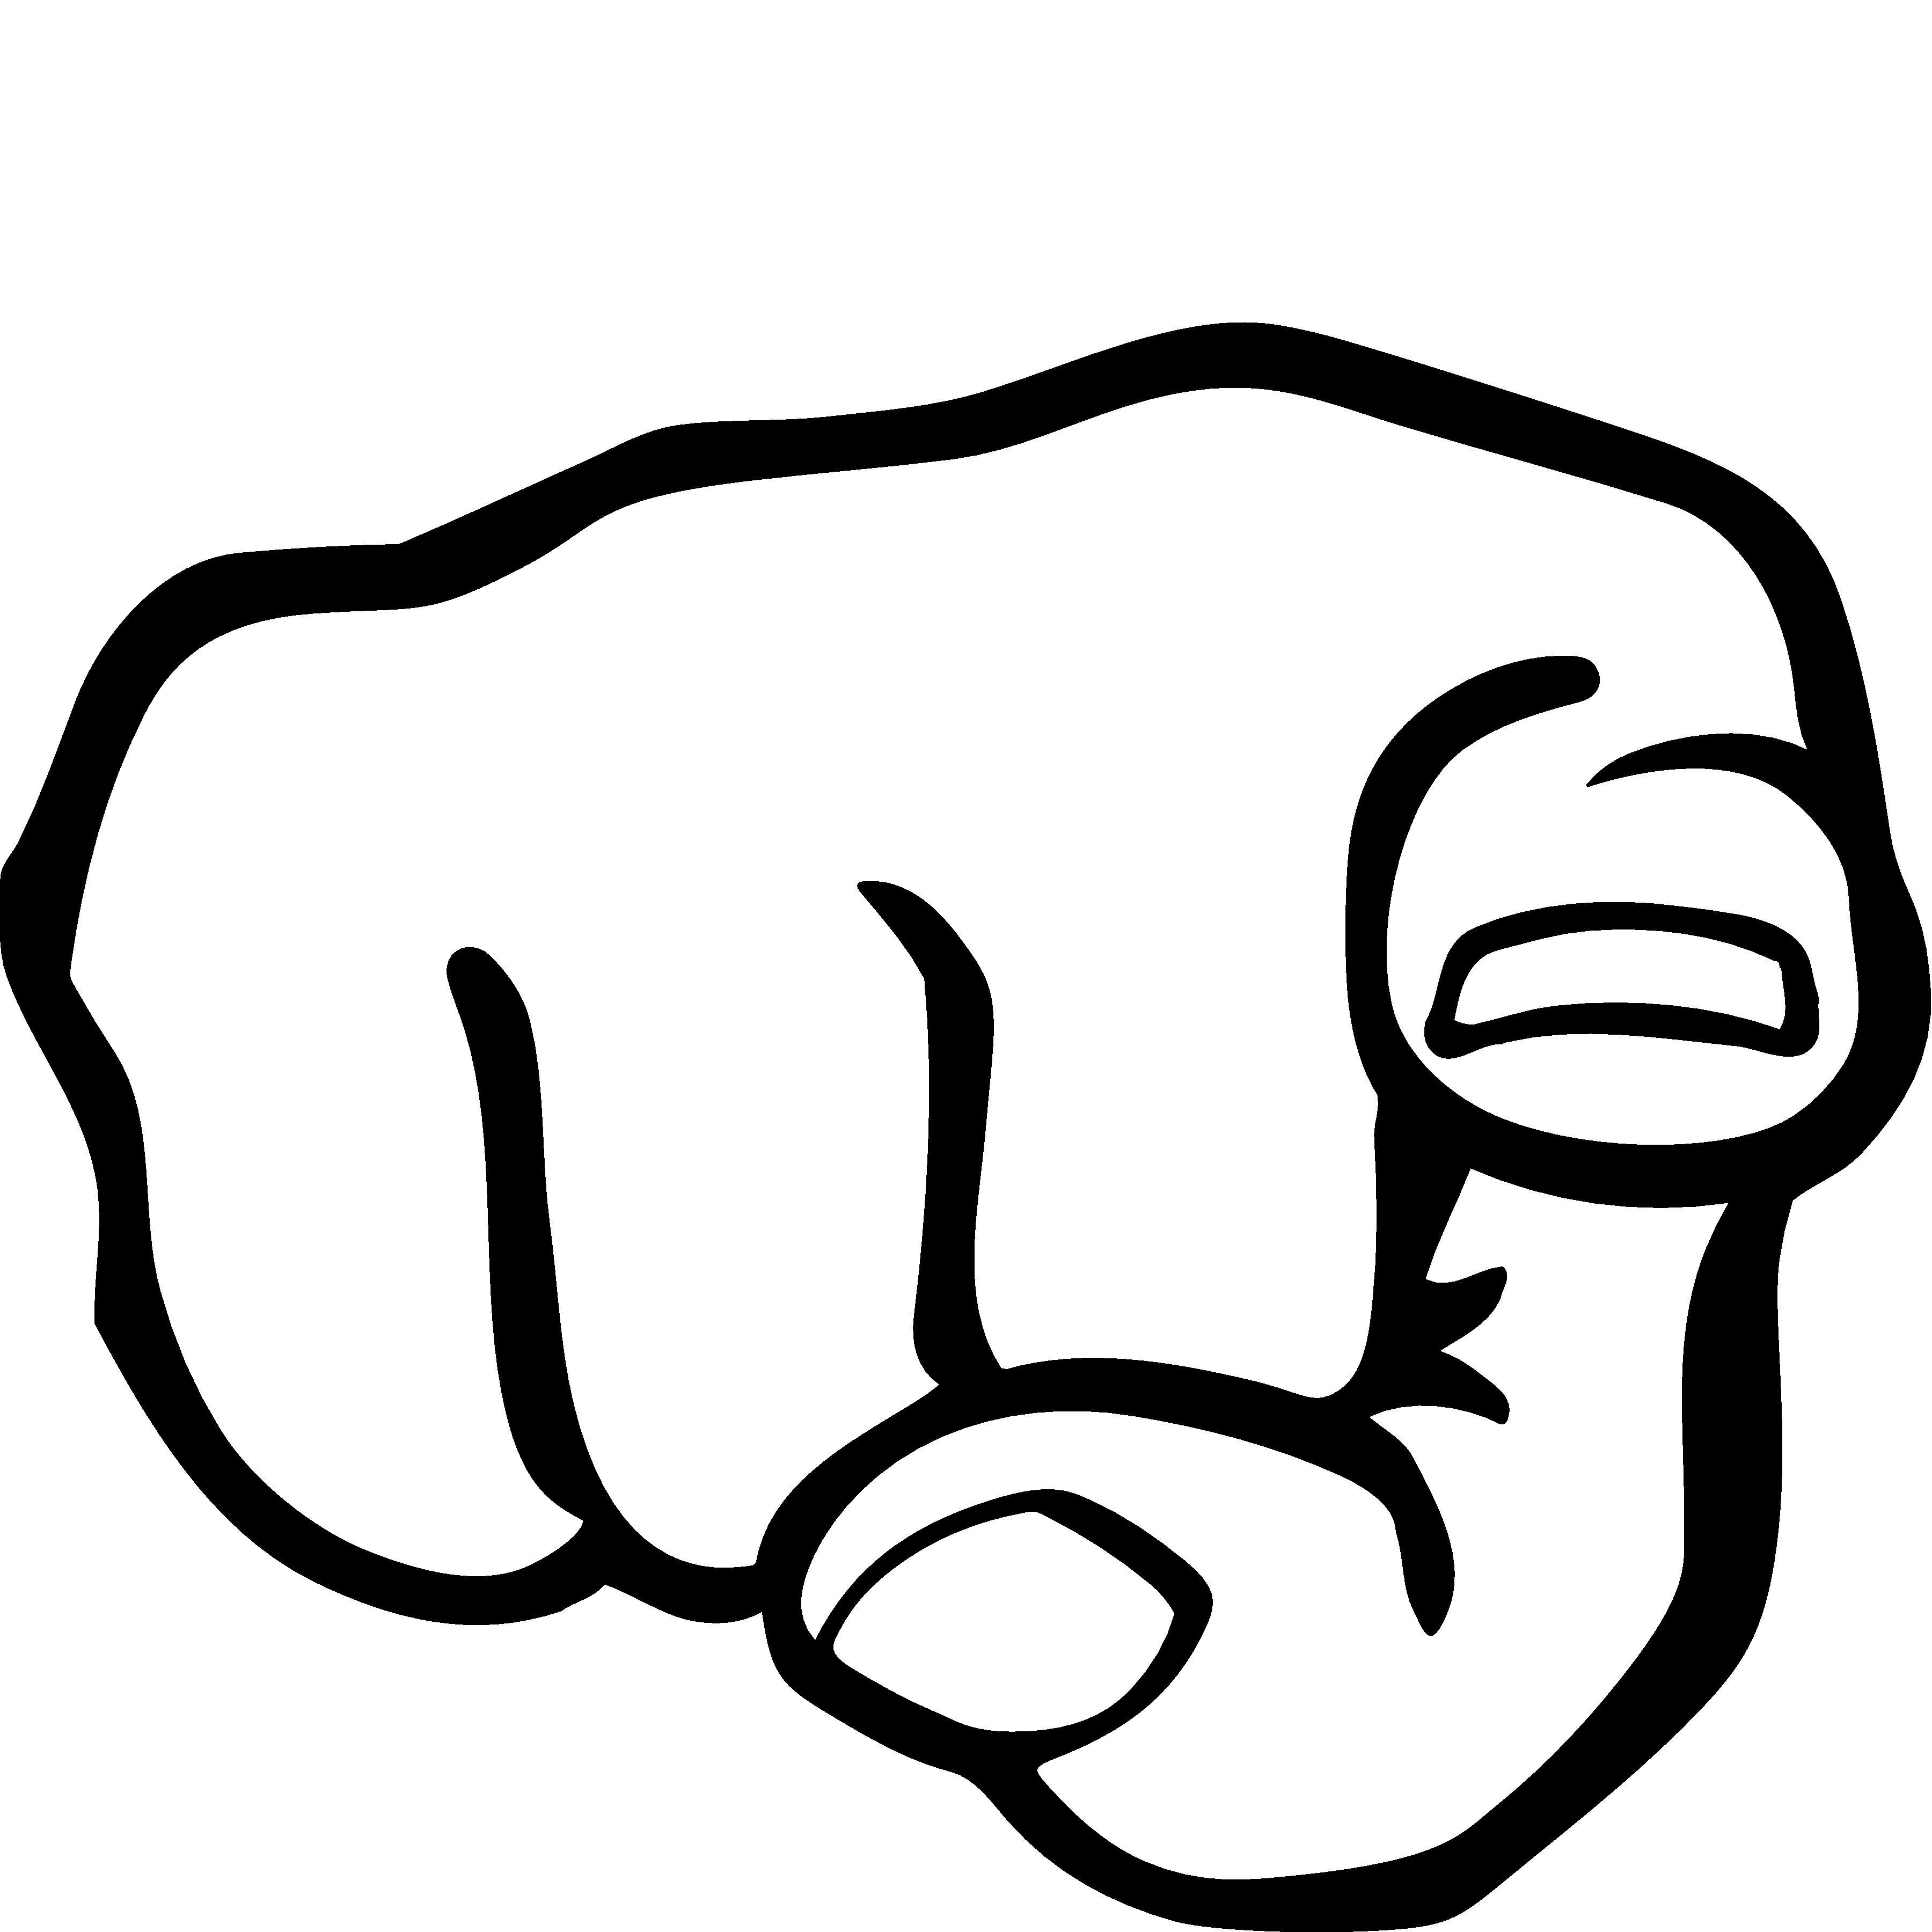 Hand pointing at you clipart image stock Hand pointing at you clipart 5 » Clipart Portal image stock